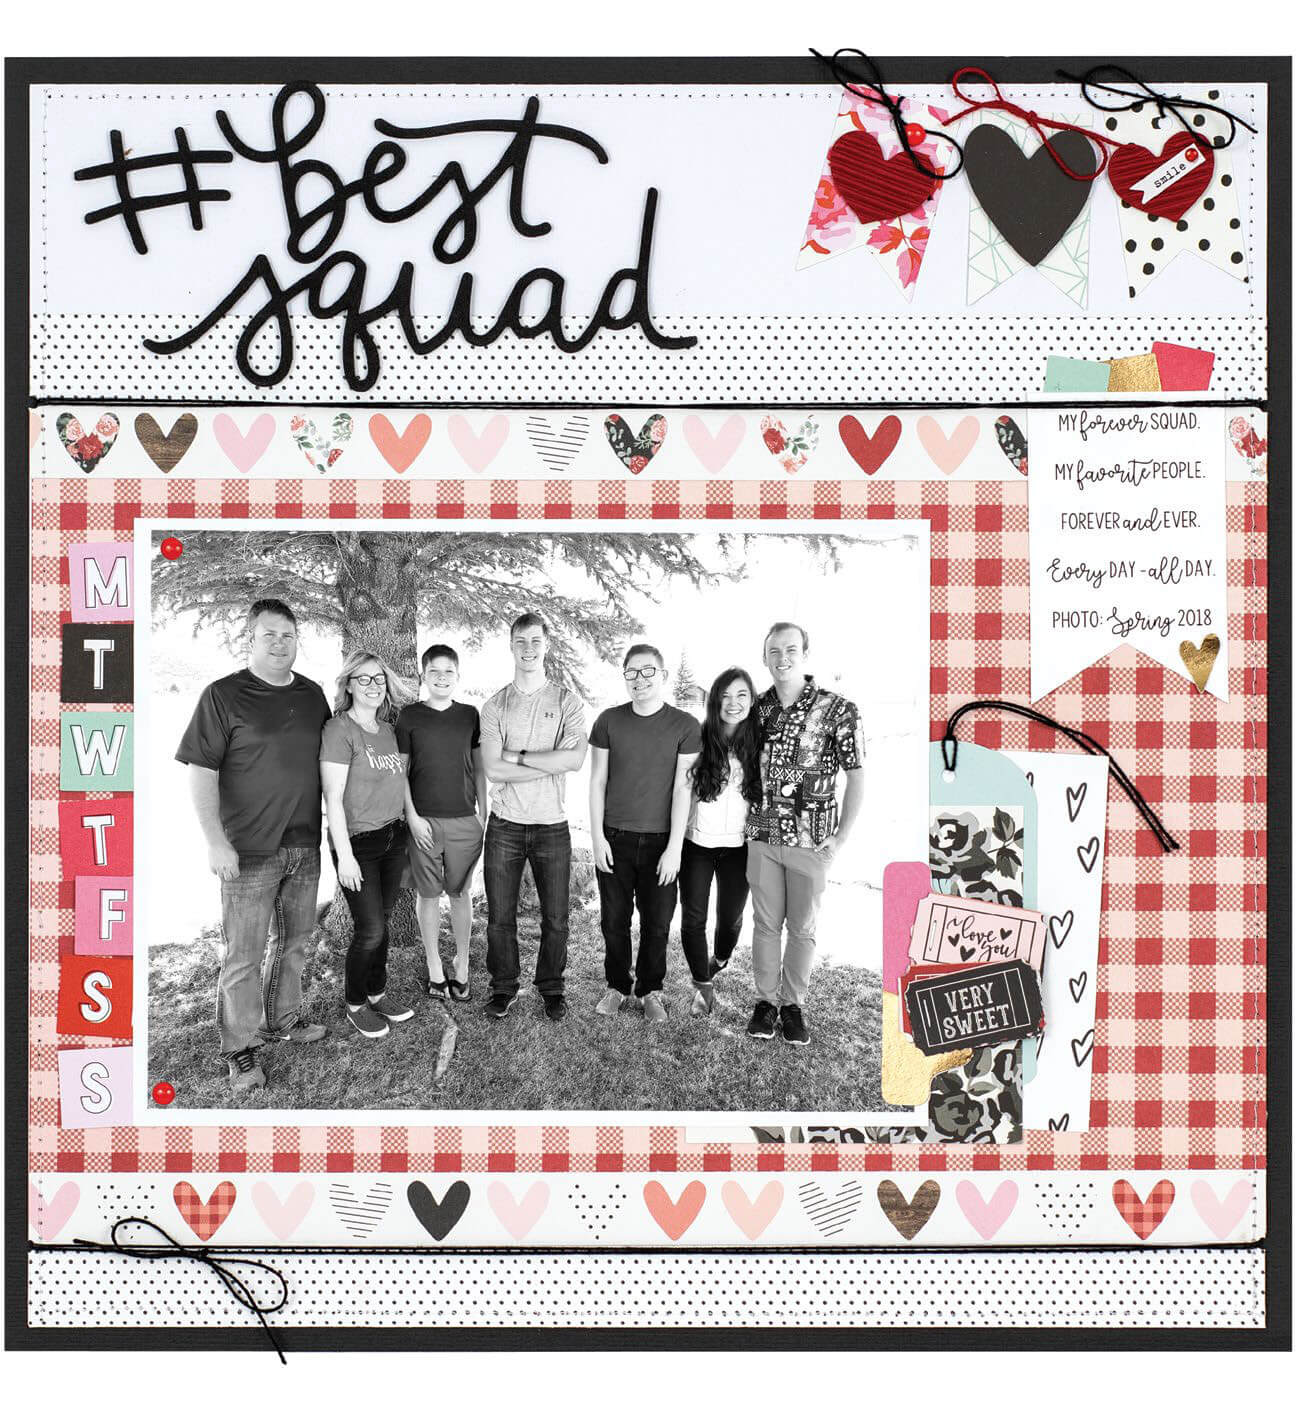 SCT Winter 2018 - #bestsquad by Wendy Sue Anderson